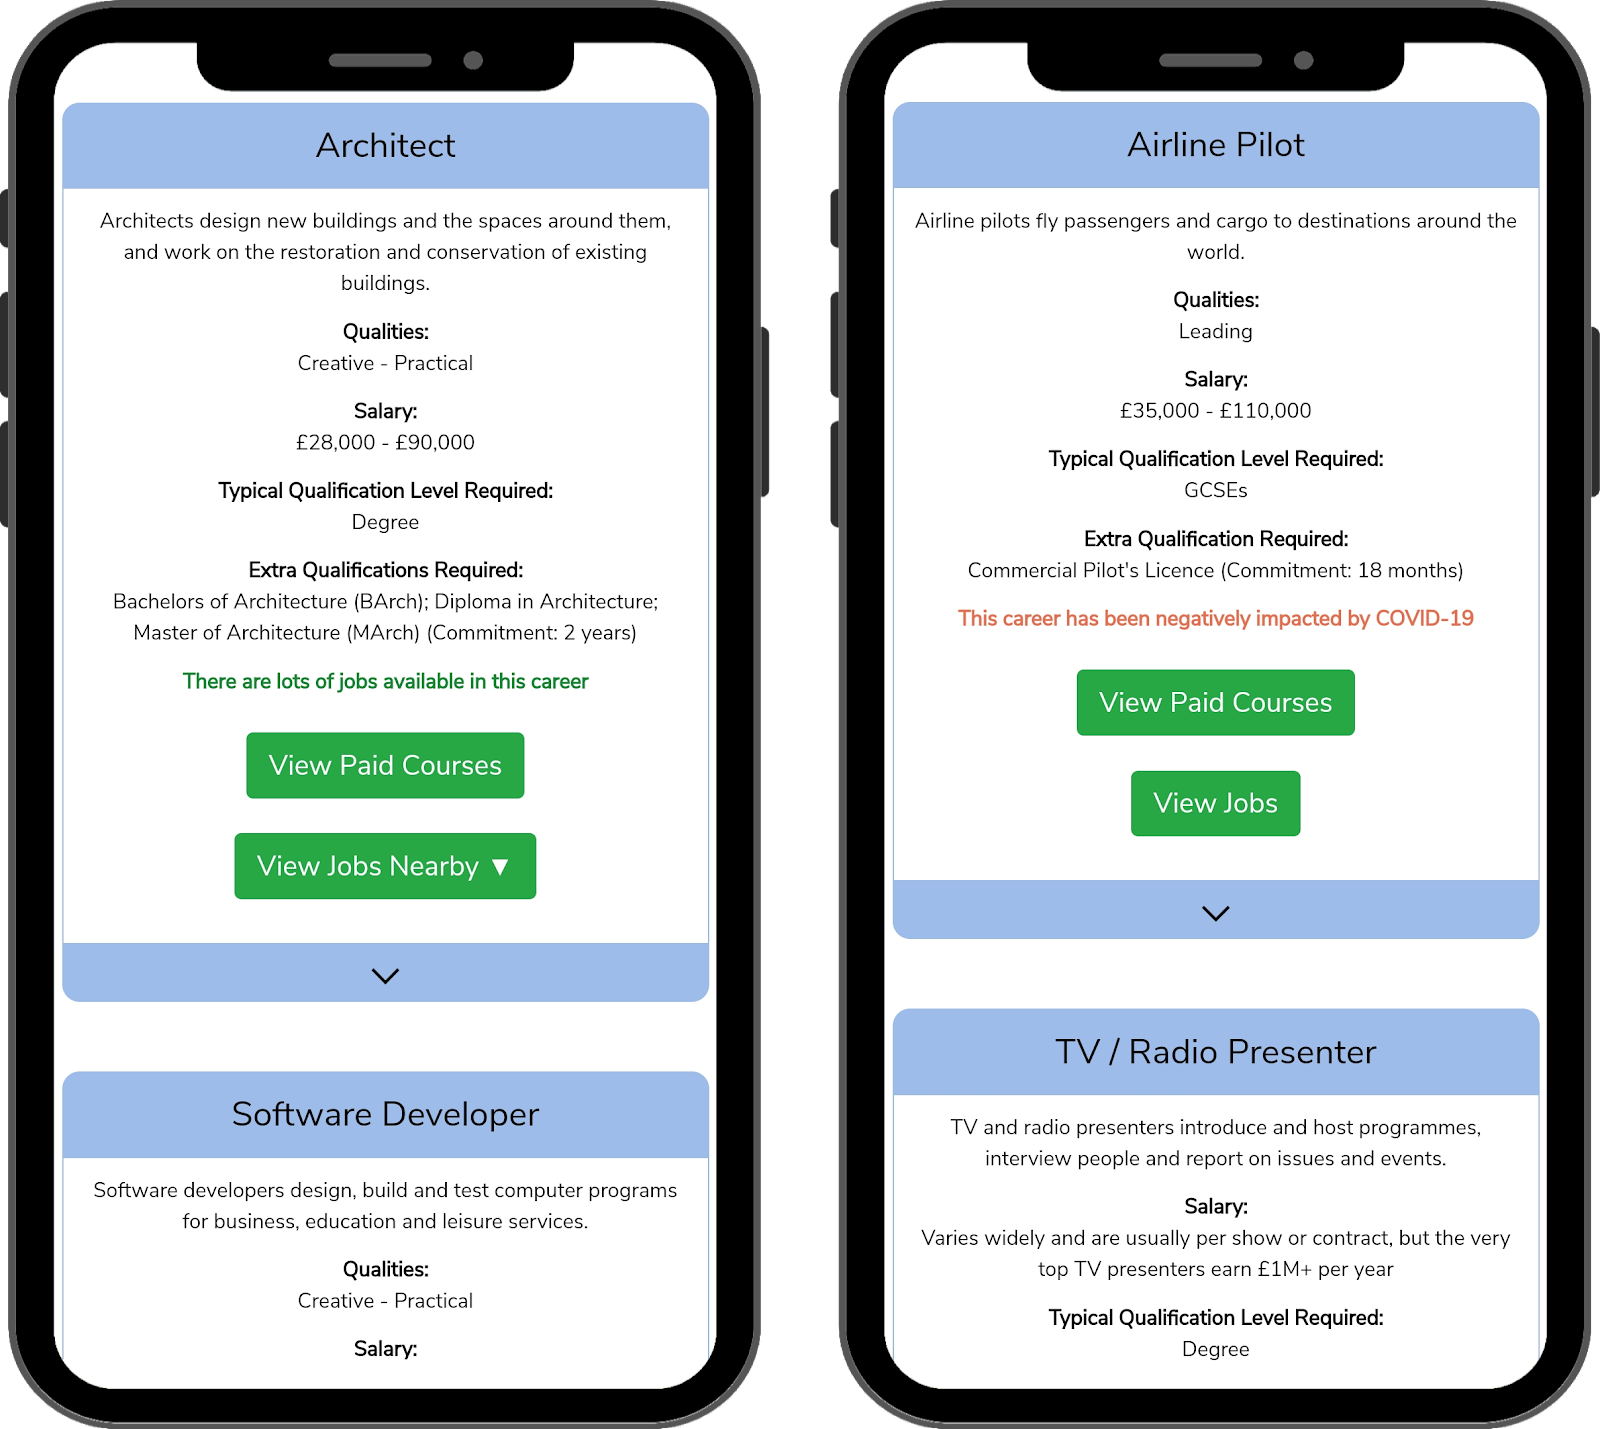 Screenshots of qualification and job demand labels in our old app design from October